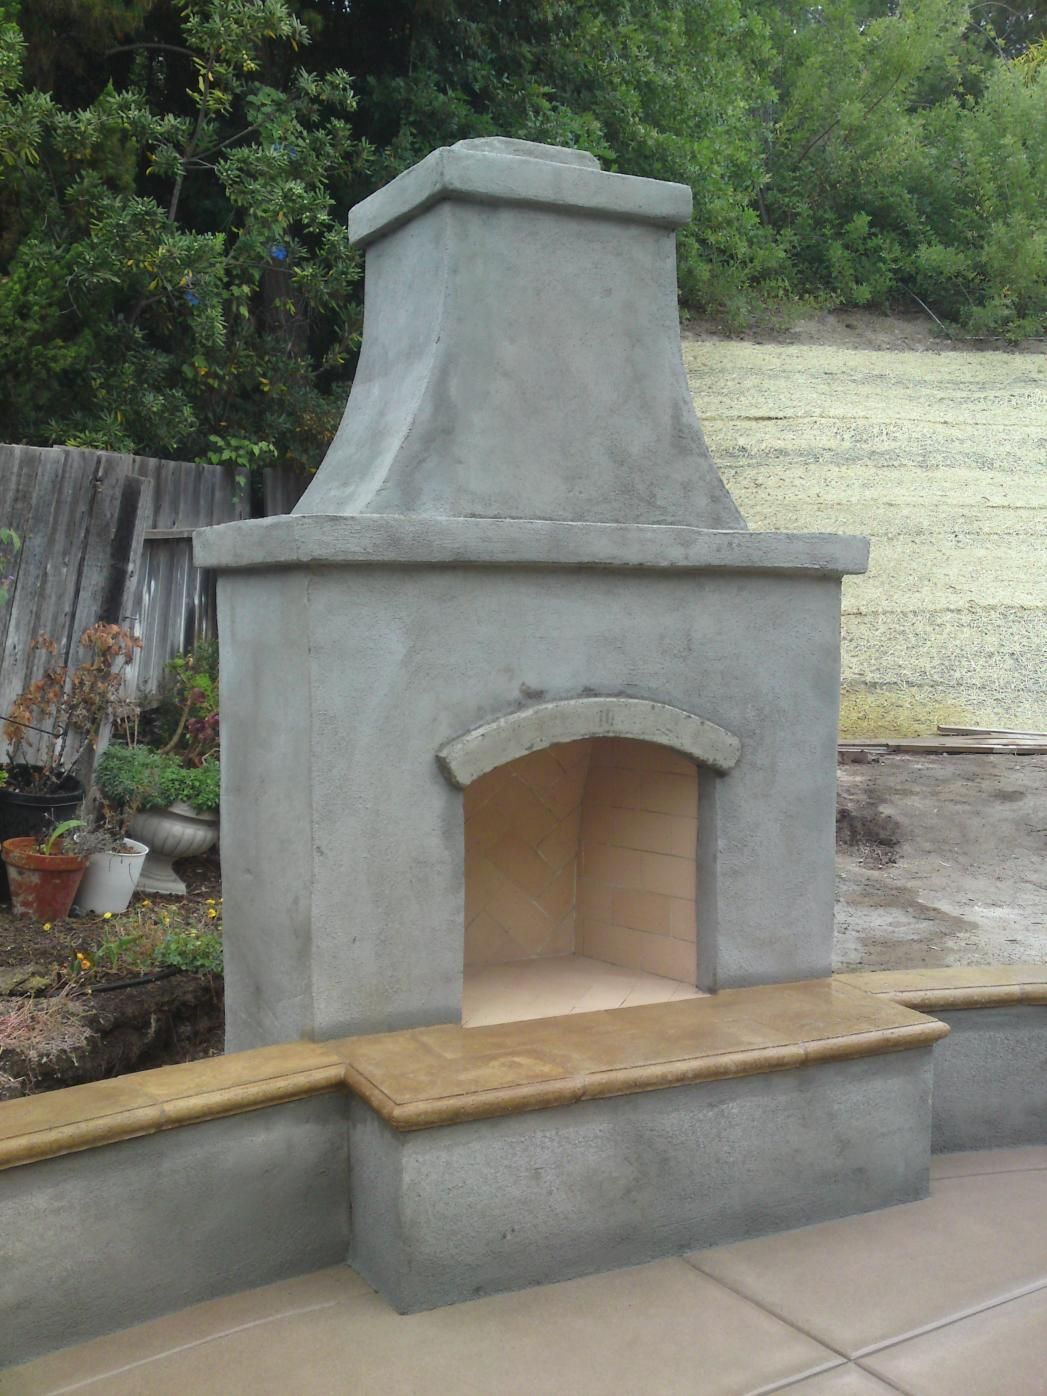 outdoor fireplace pictures detail on the firebox with running